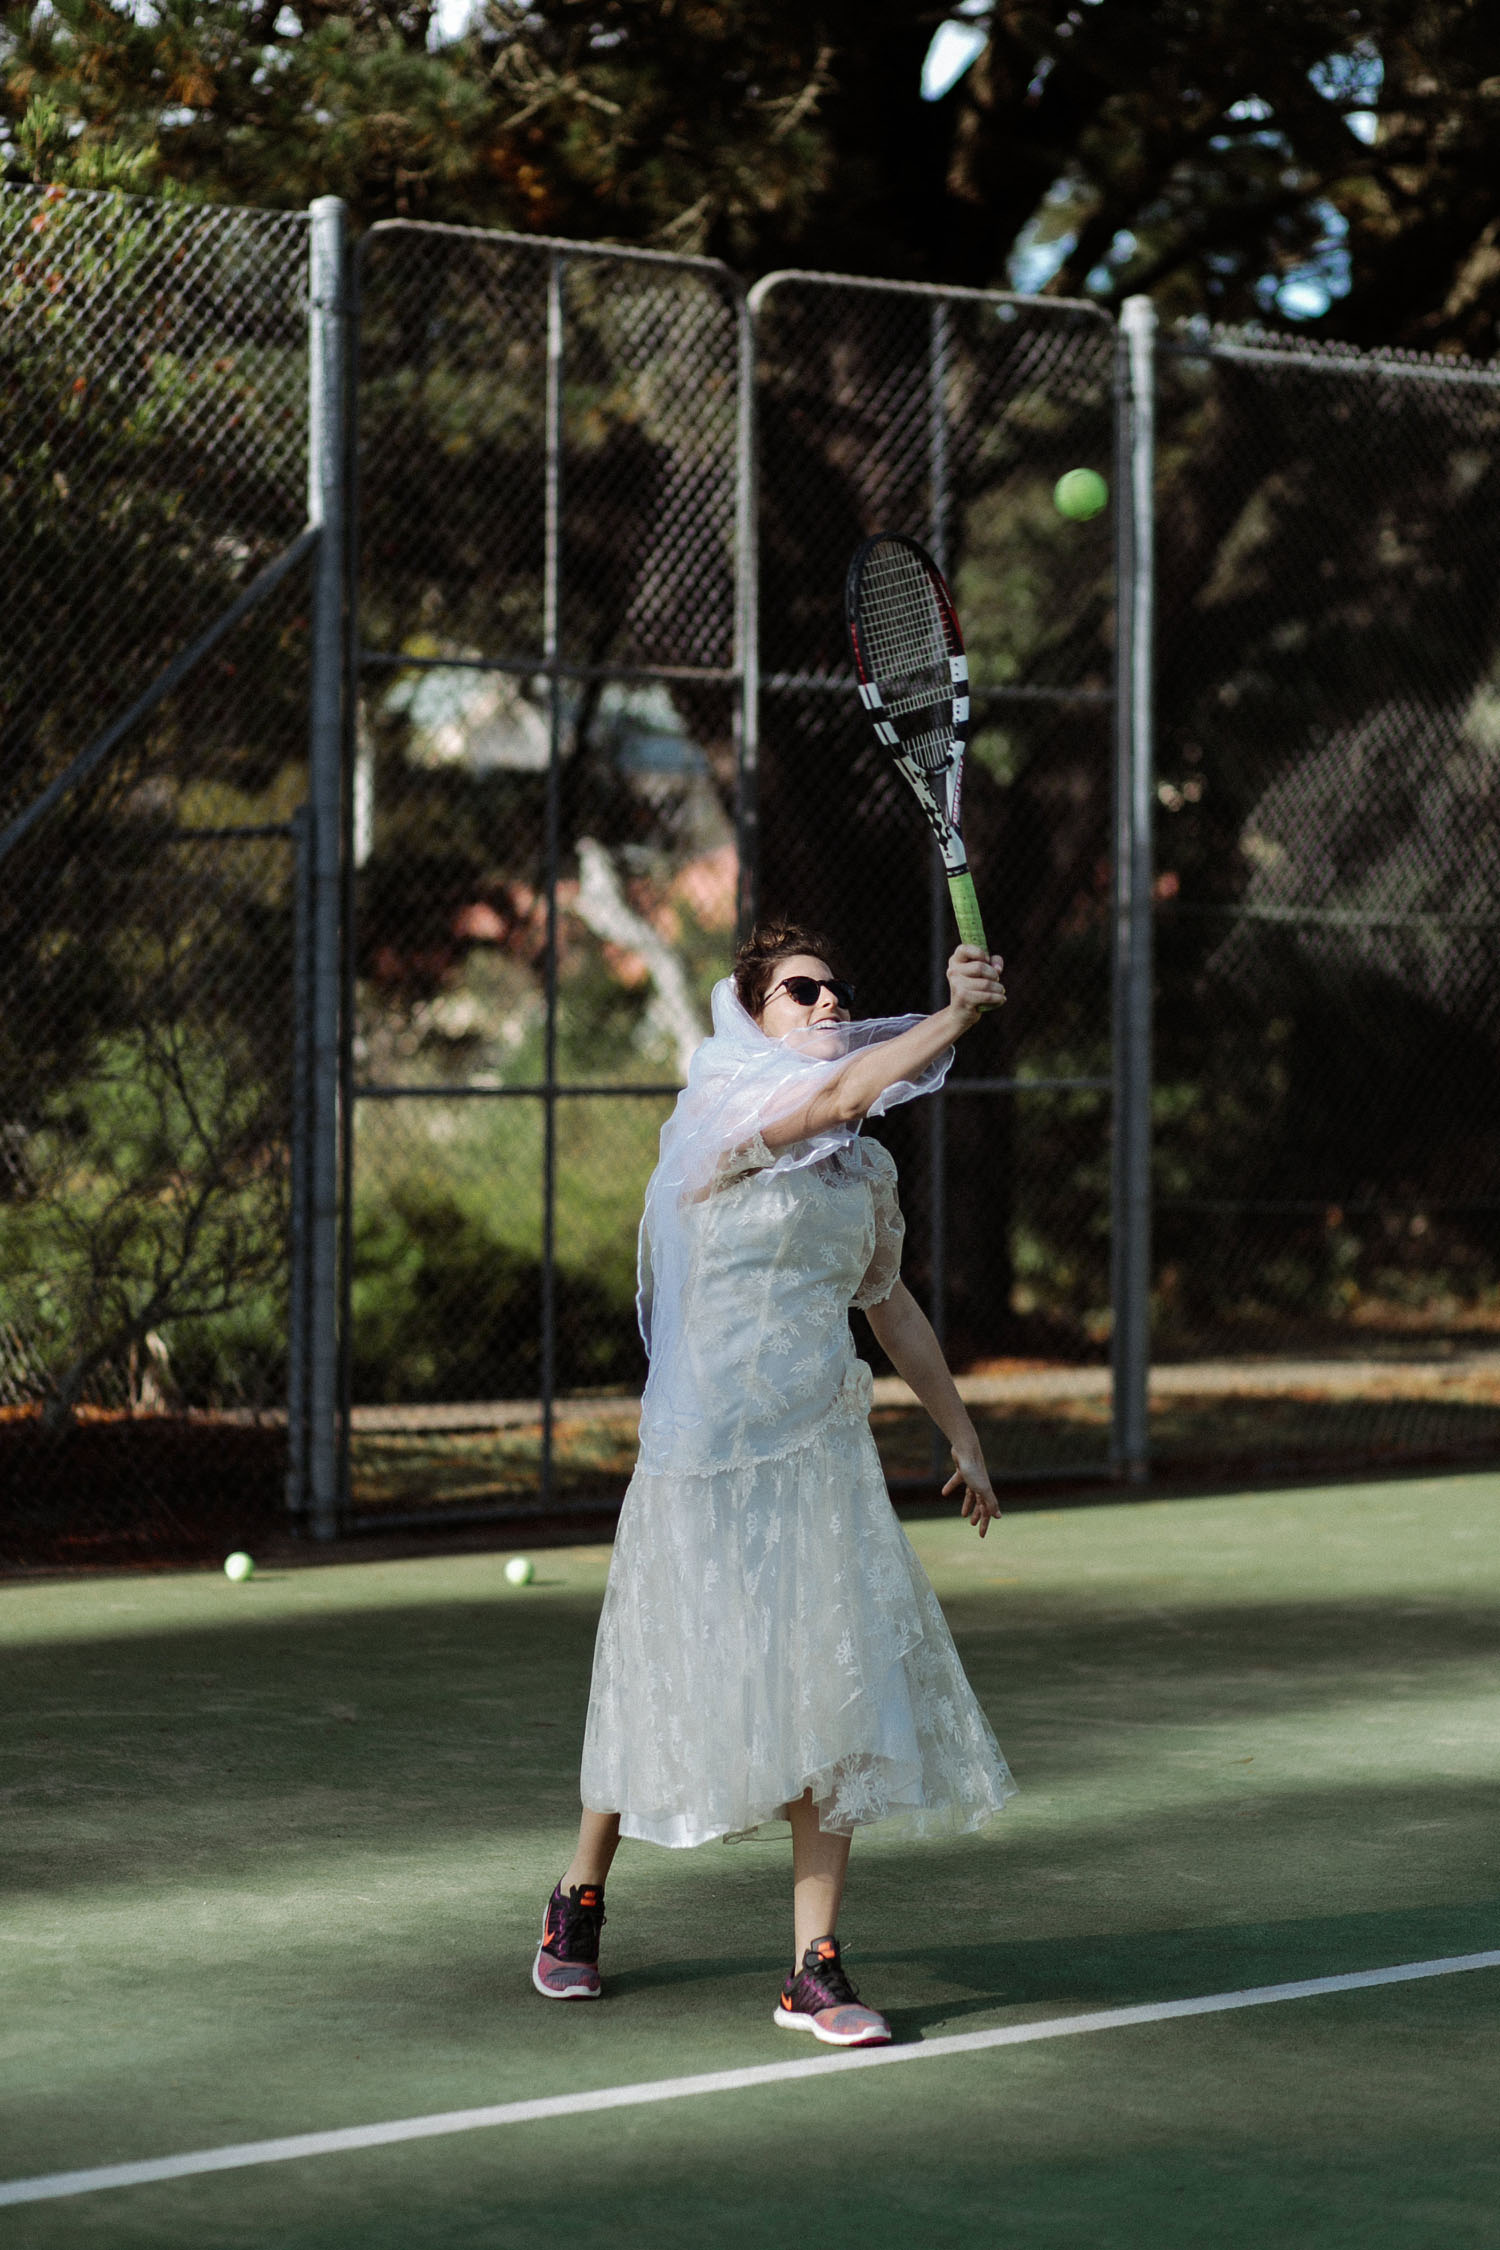 bride vintage wedding dress playing tennis